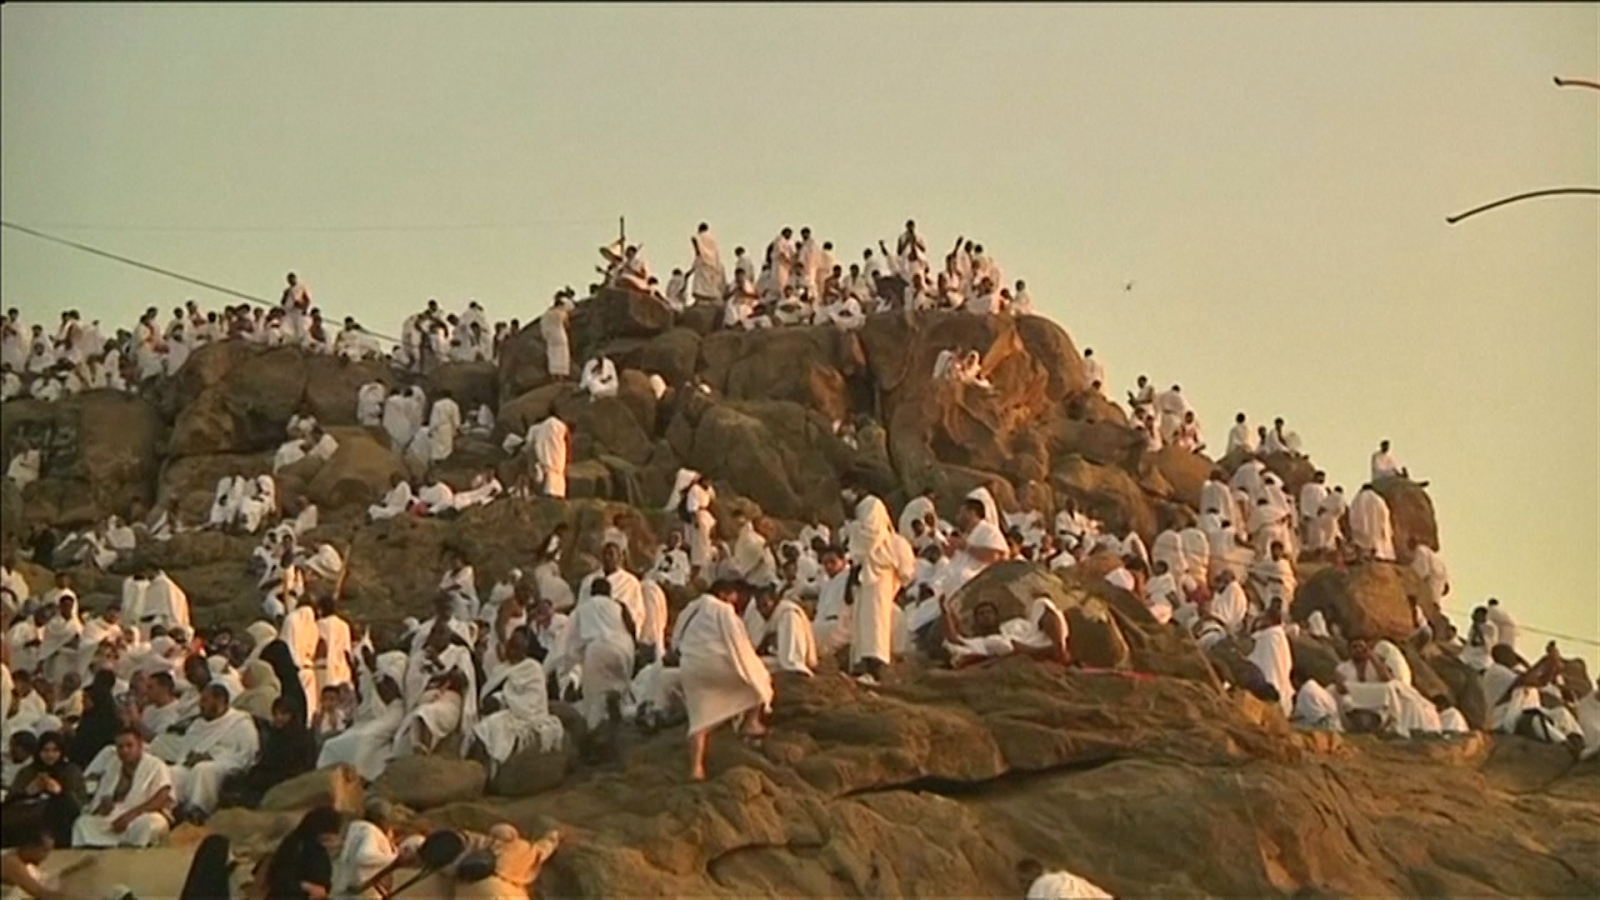 Muslim Wallpaper Hd Nearly Two Million Hajjis Gather At Mount Arafat